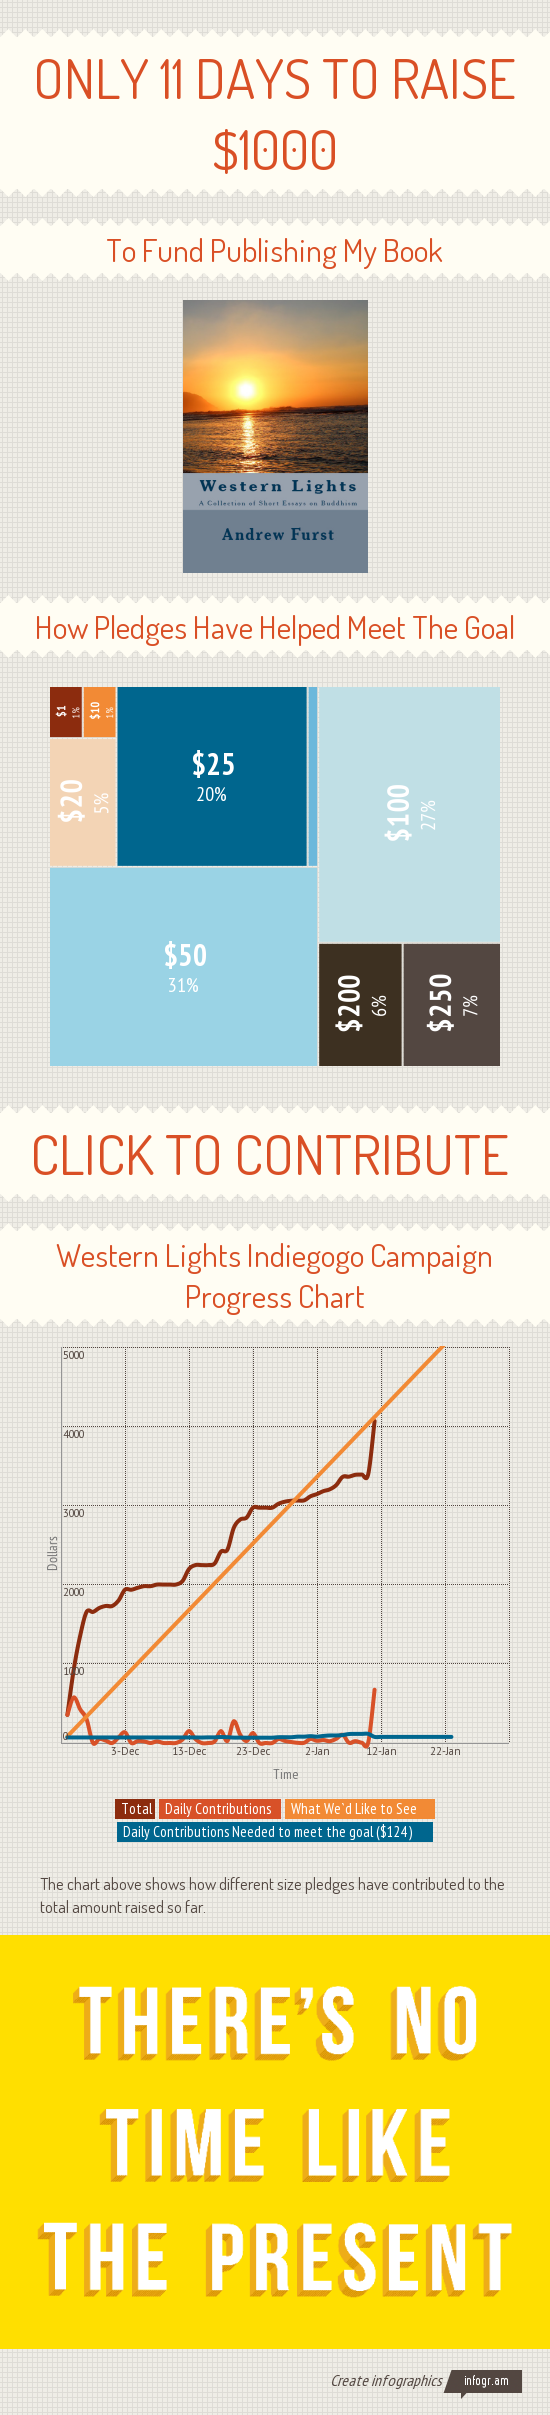 ONLY 11 Days to raise $1000